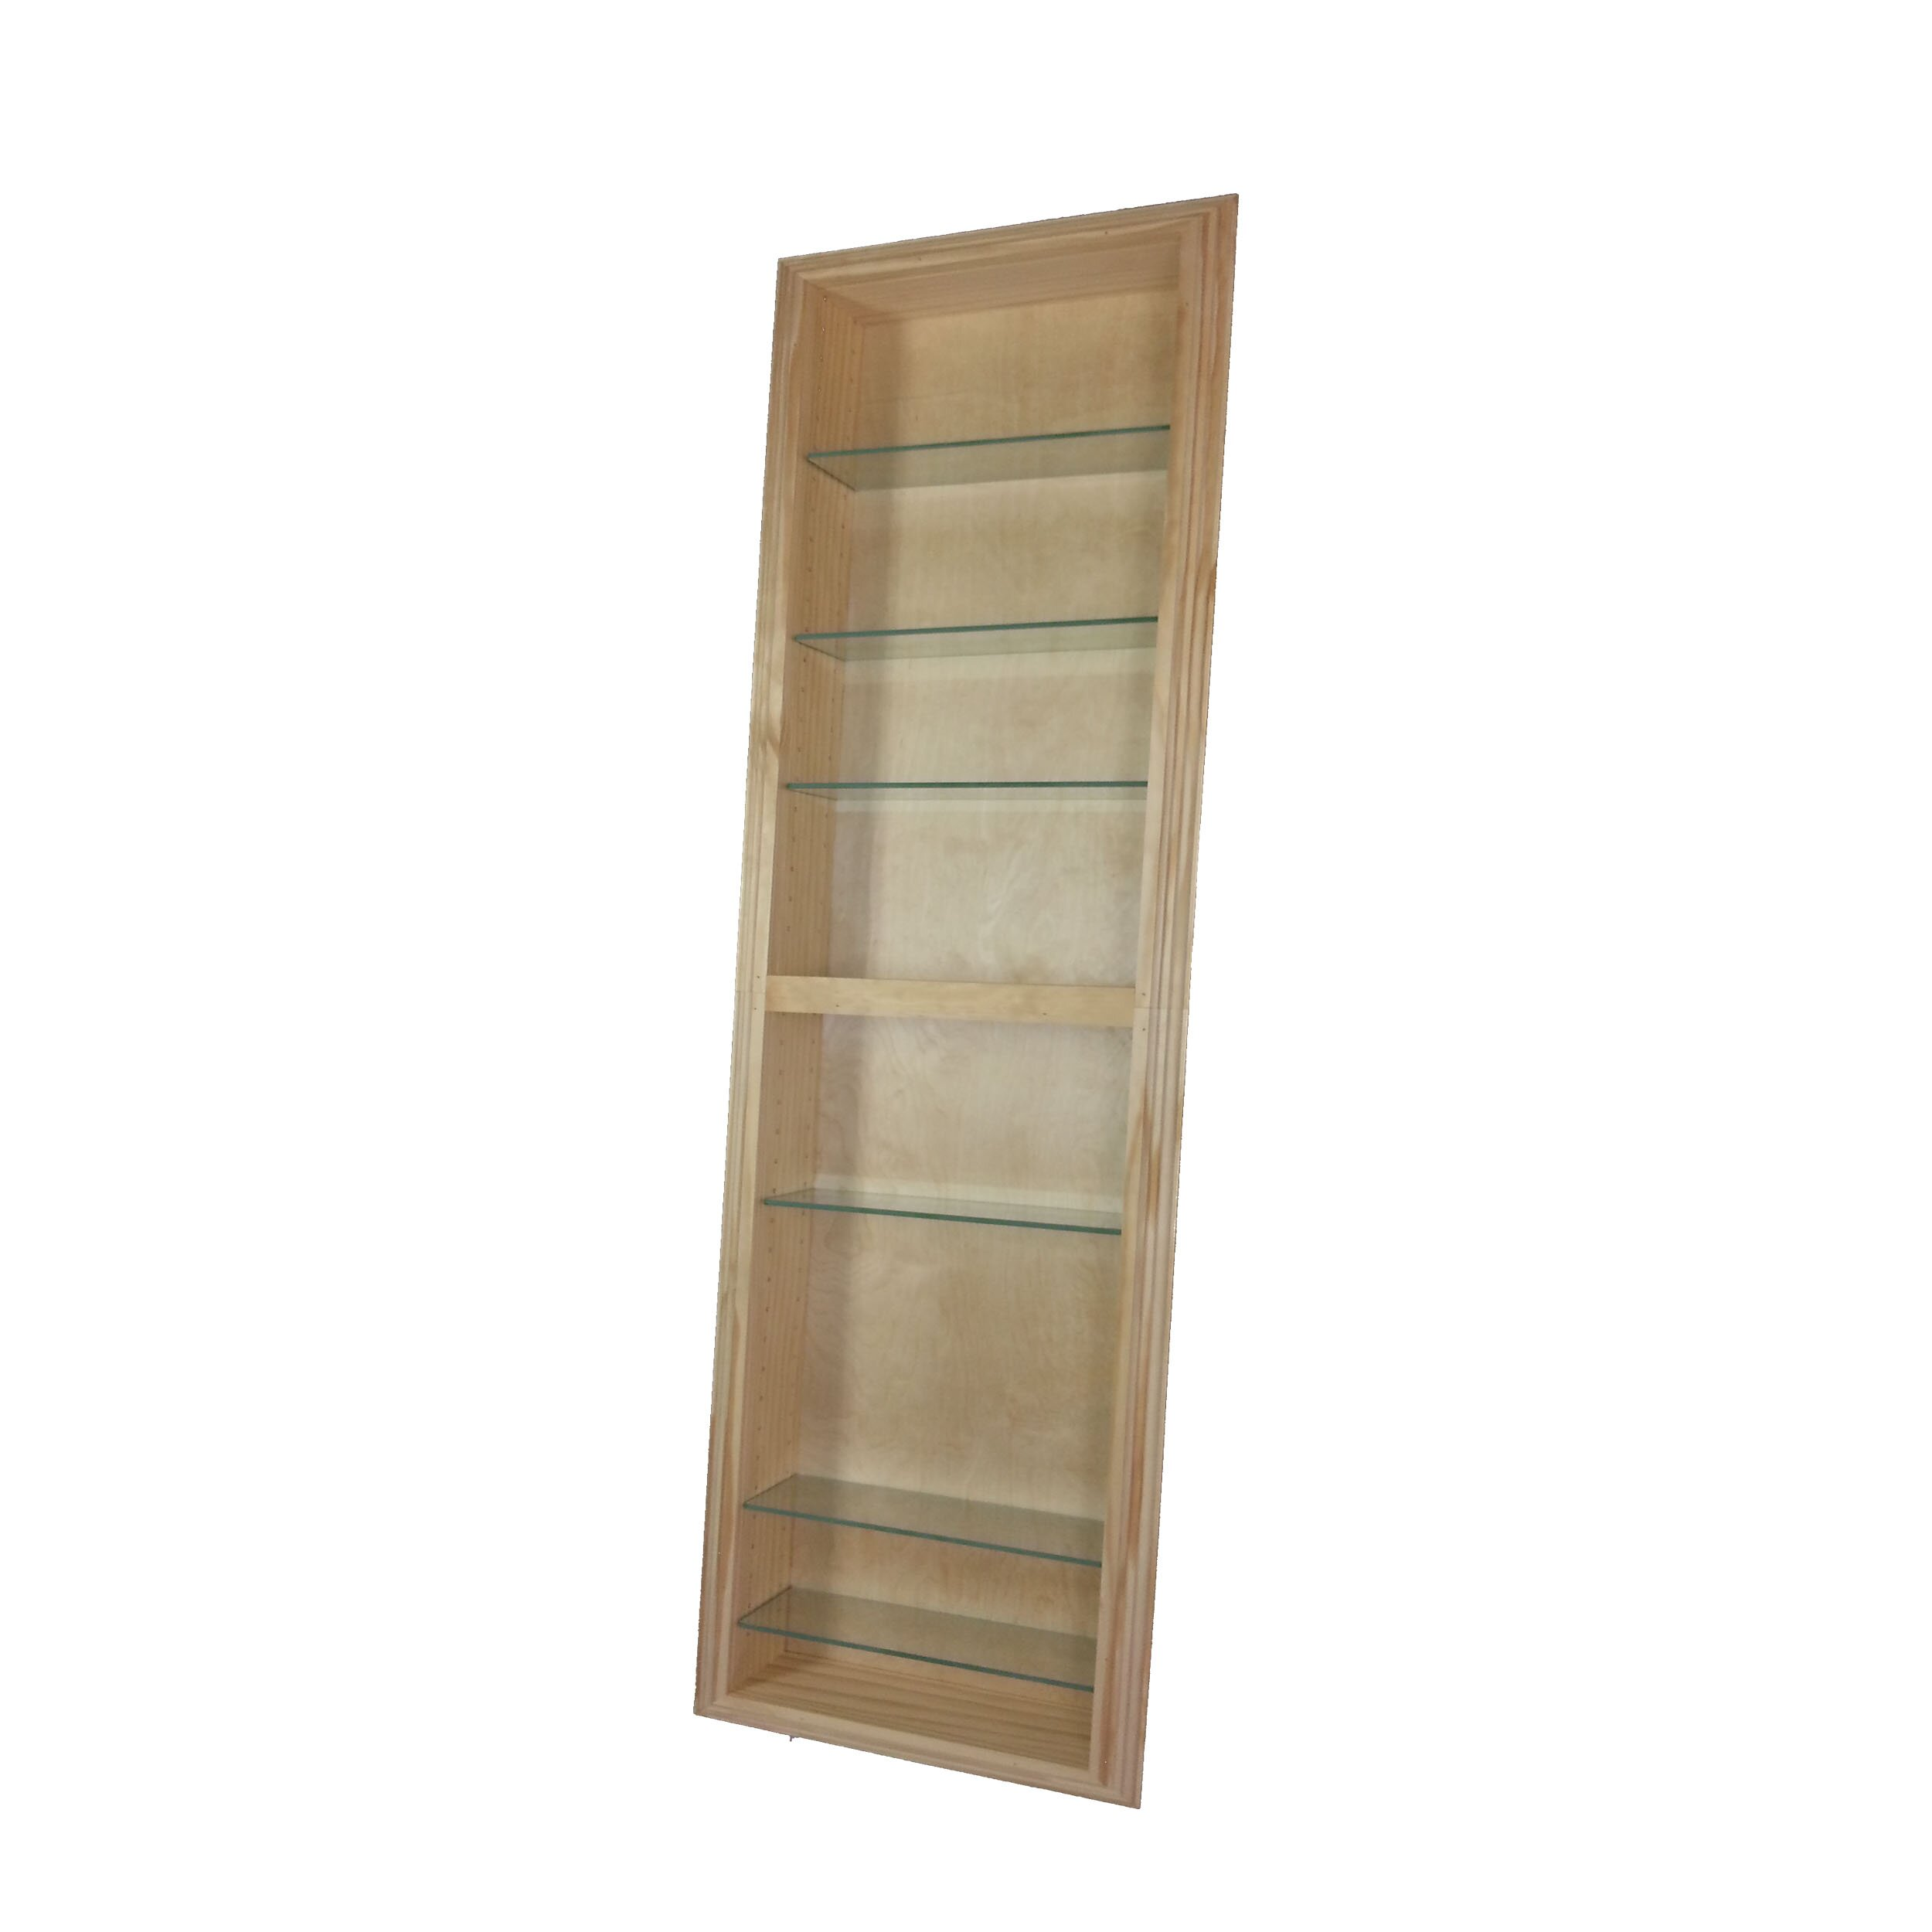 wg wood products christopher  x  recessed medicine cabinet  - wg wood products christopher quot x quot recessed medicine cabinet